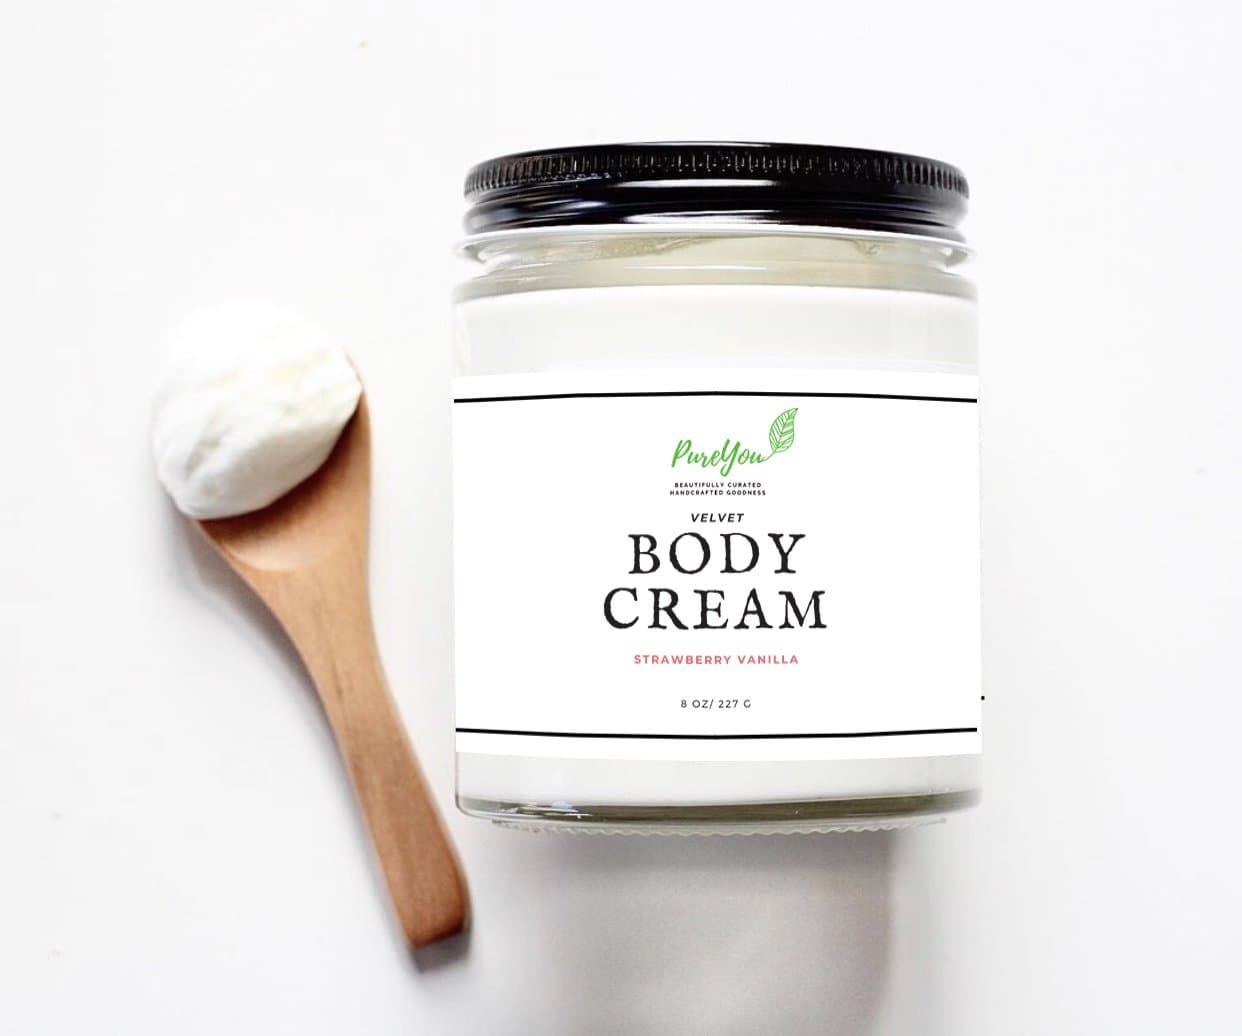 Strawberry Vanilla Velvet Body Cream